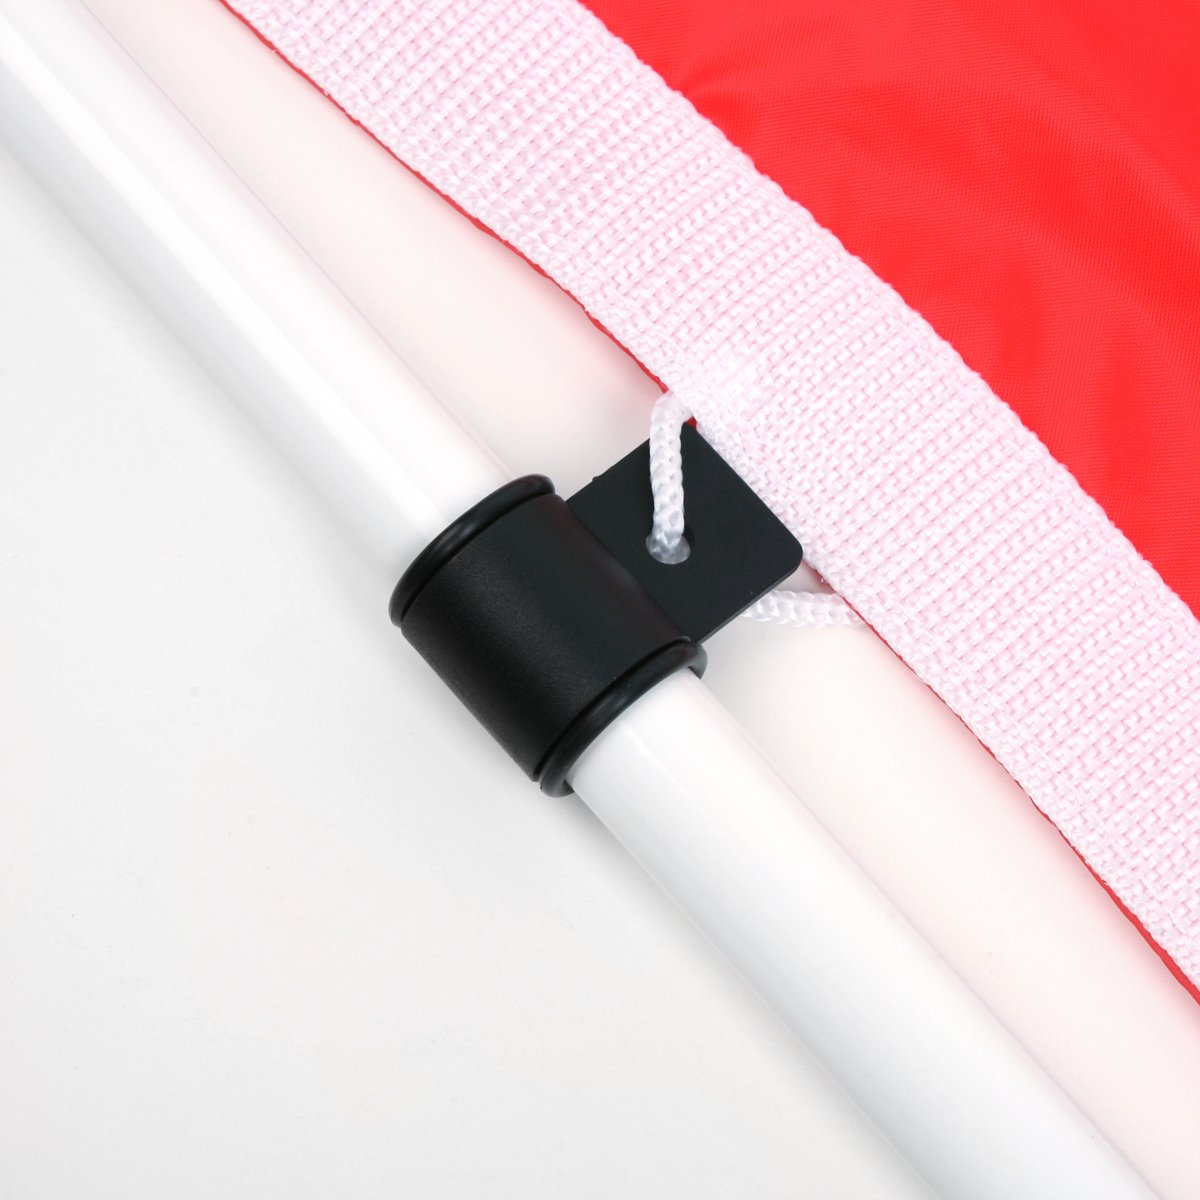 Tour Gear Portable Golf Flag with Cup by Tour Gear